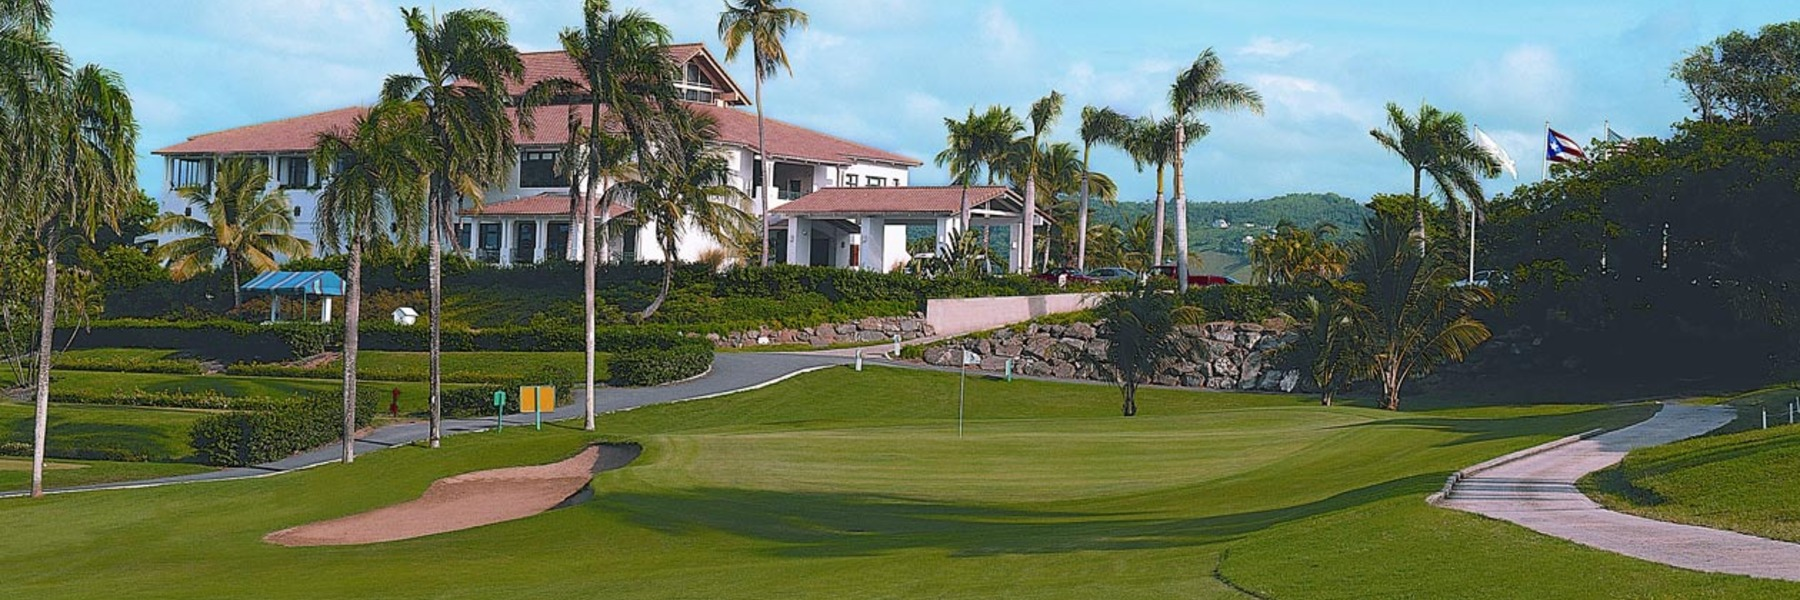 Golf Vacation Package - Wyndham Grand Rio Mar Resort - Ocean Course